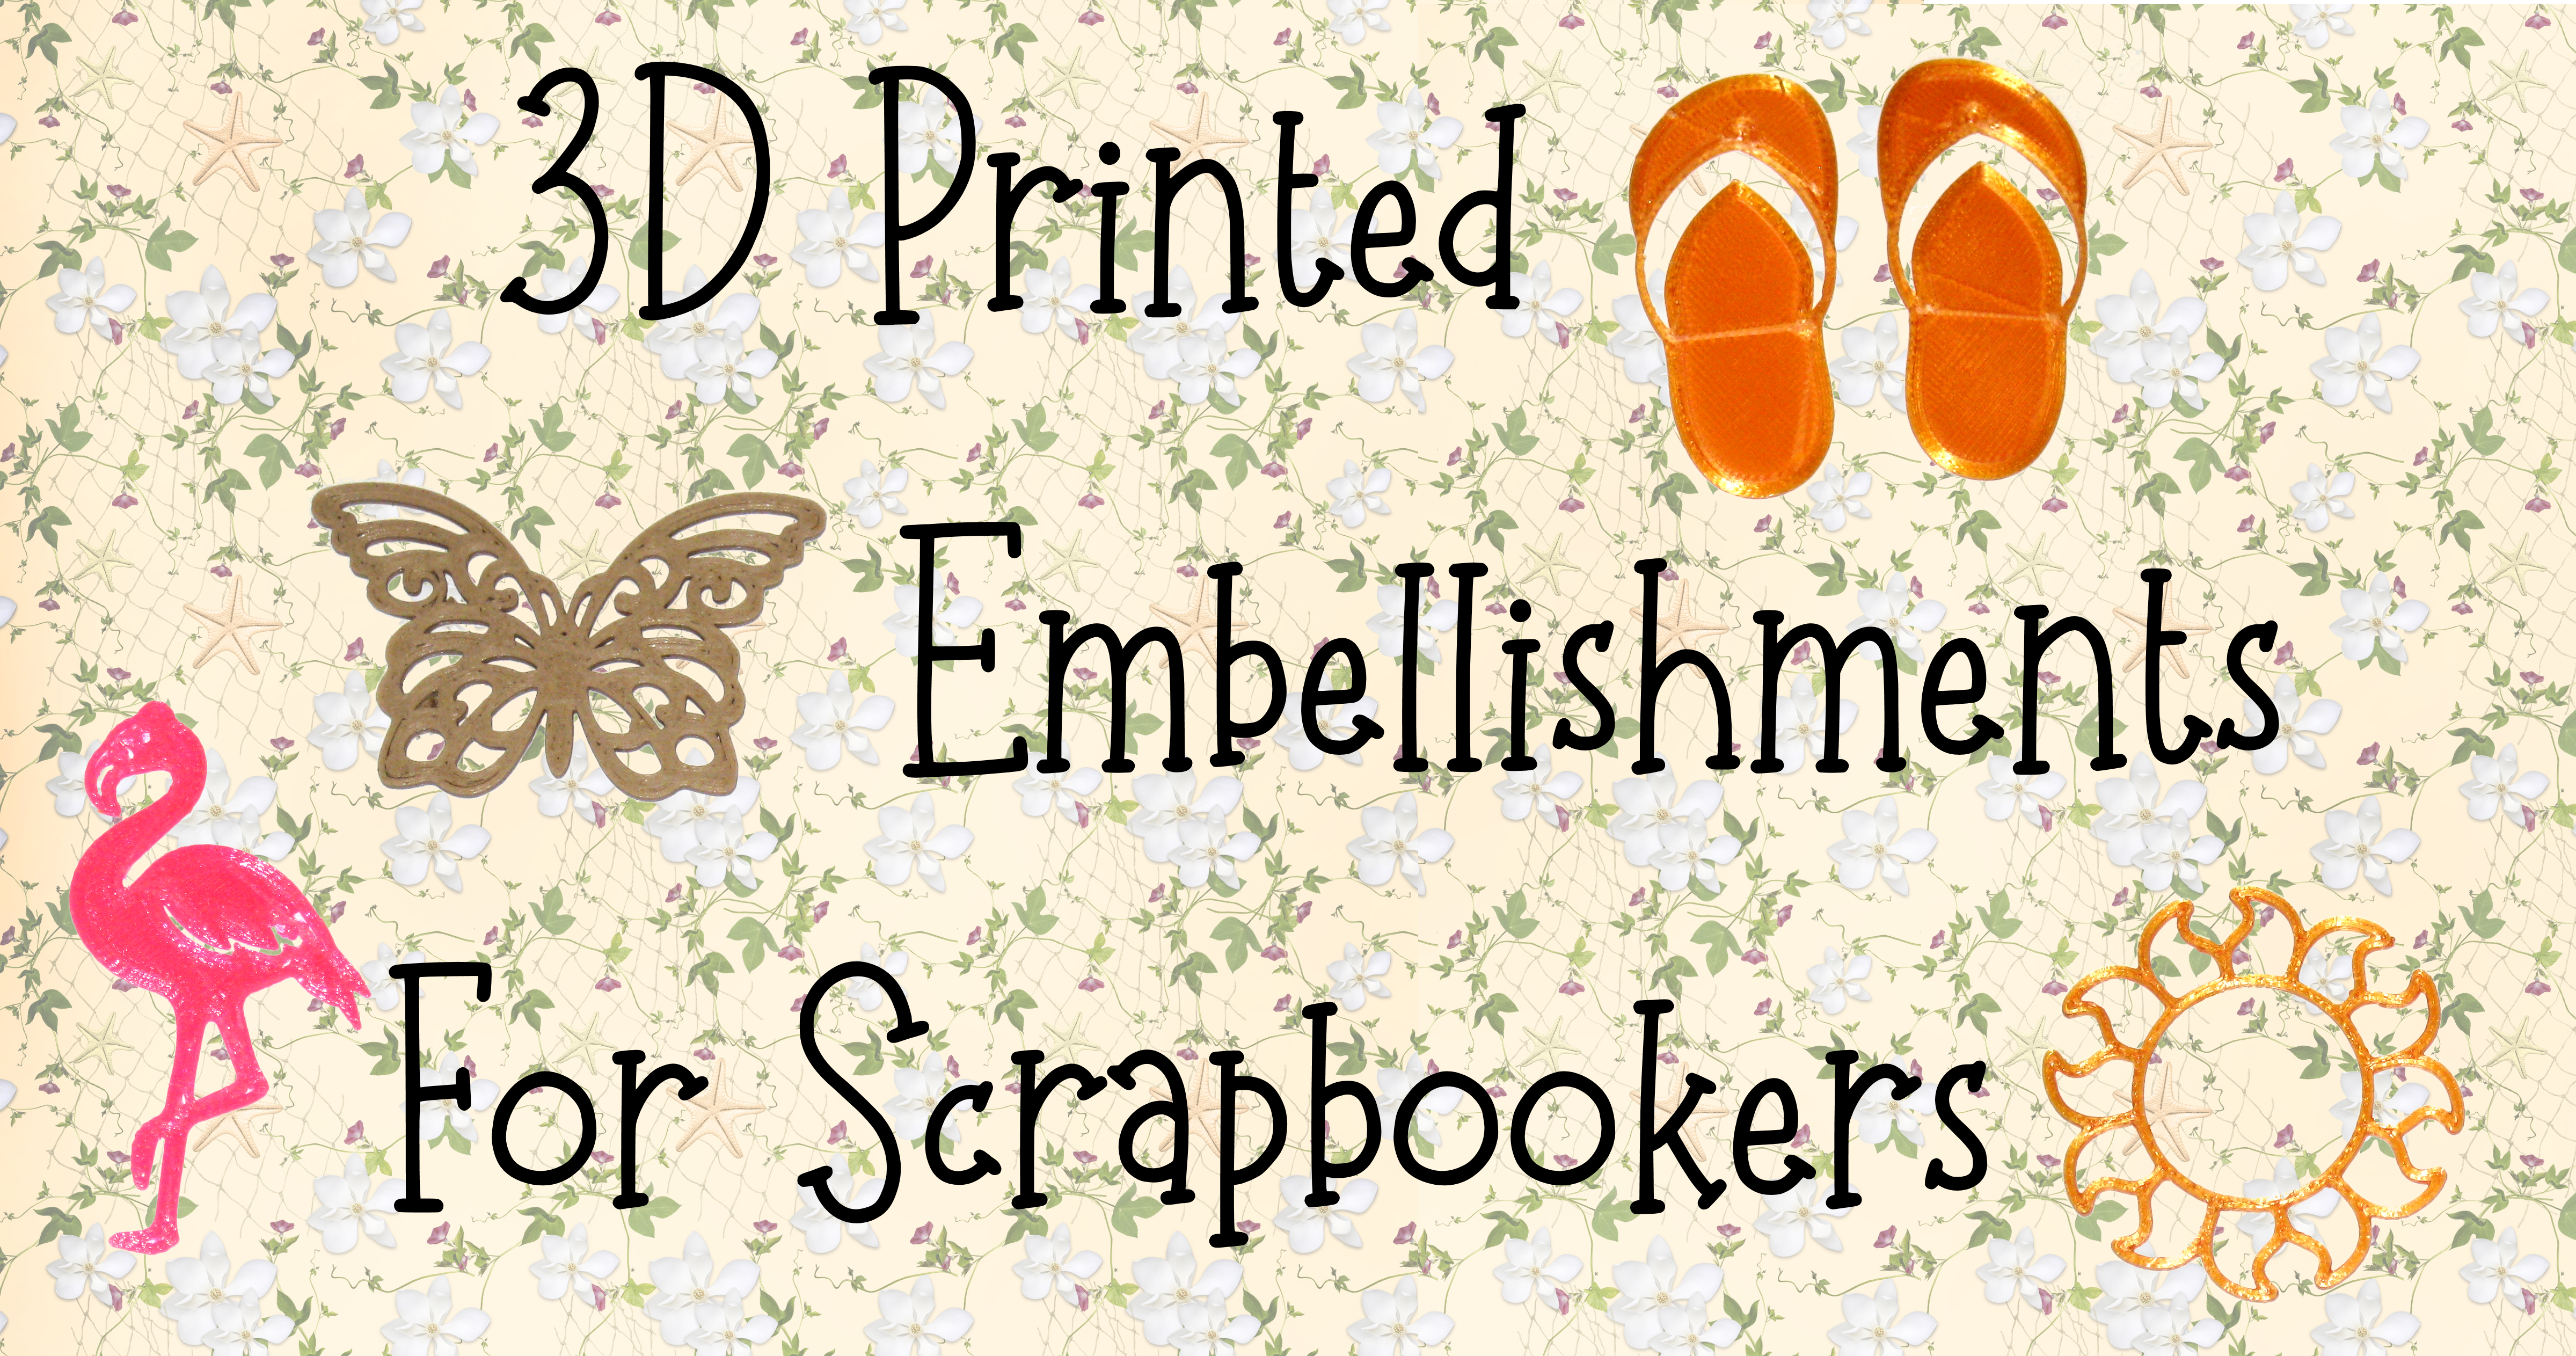 3D Printed Embellishments for Scrapbookers